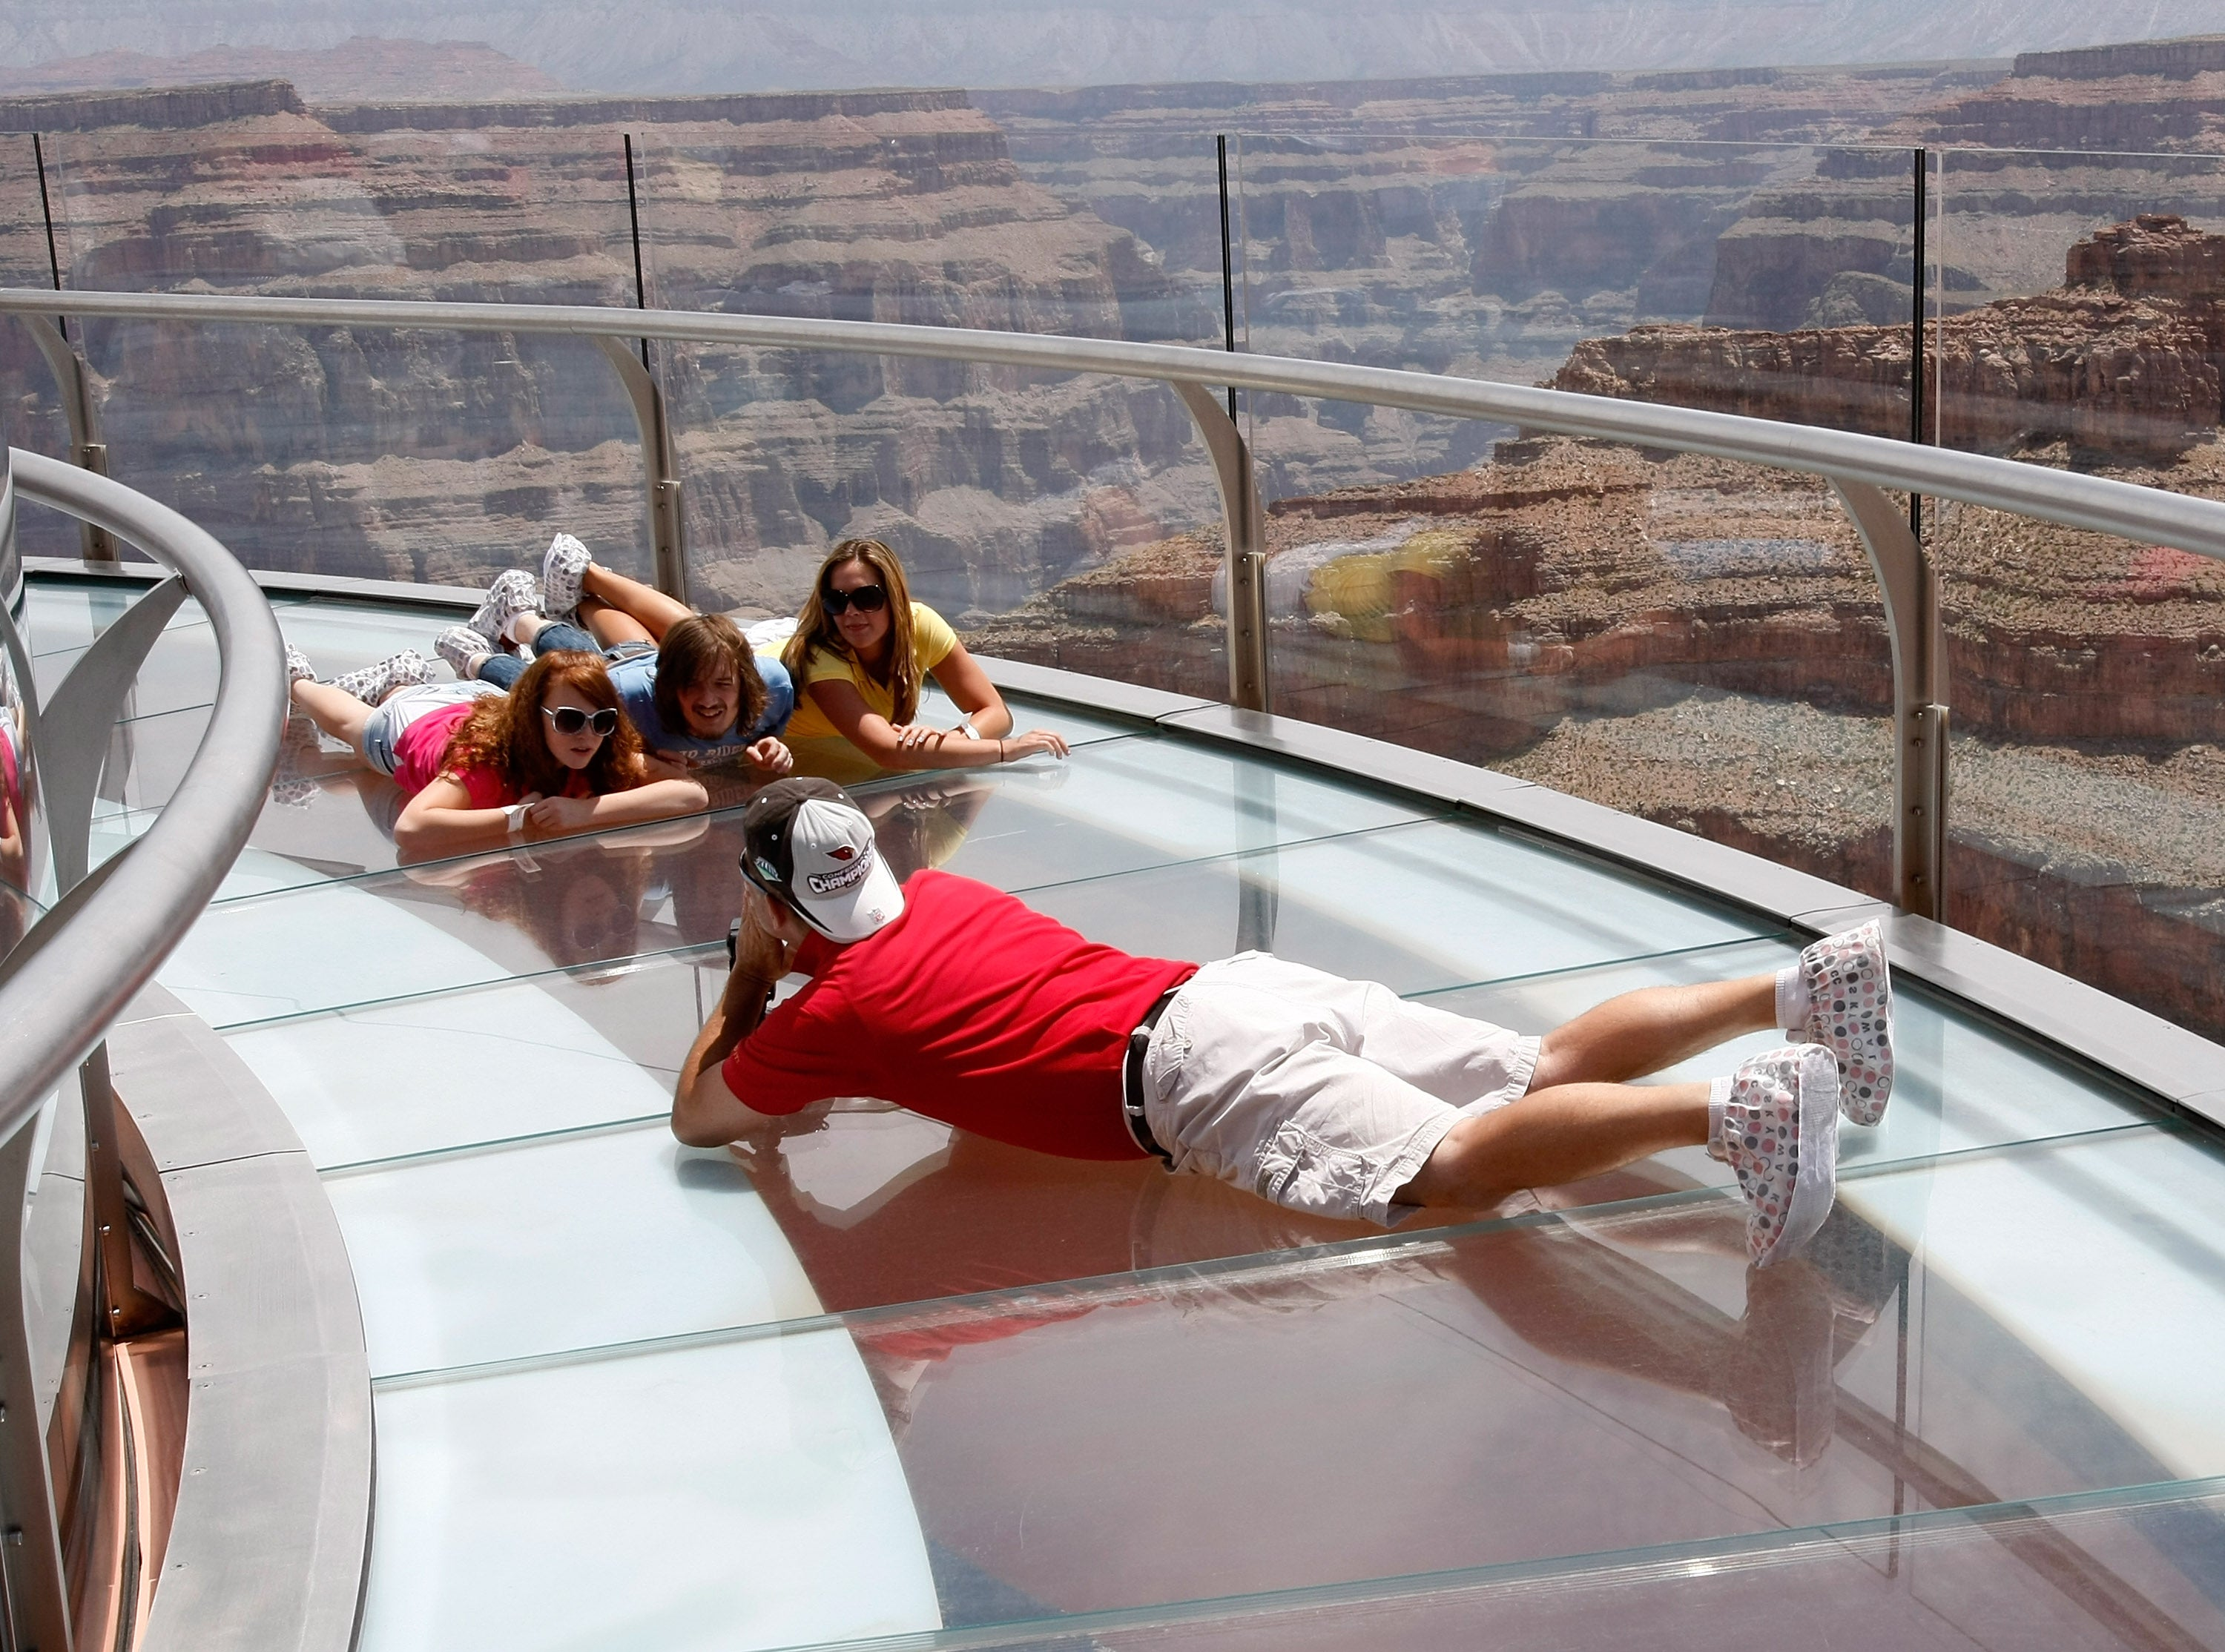 Skywalk Case Goes Before Federal Appellate Court The